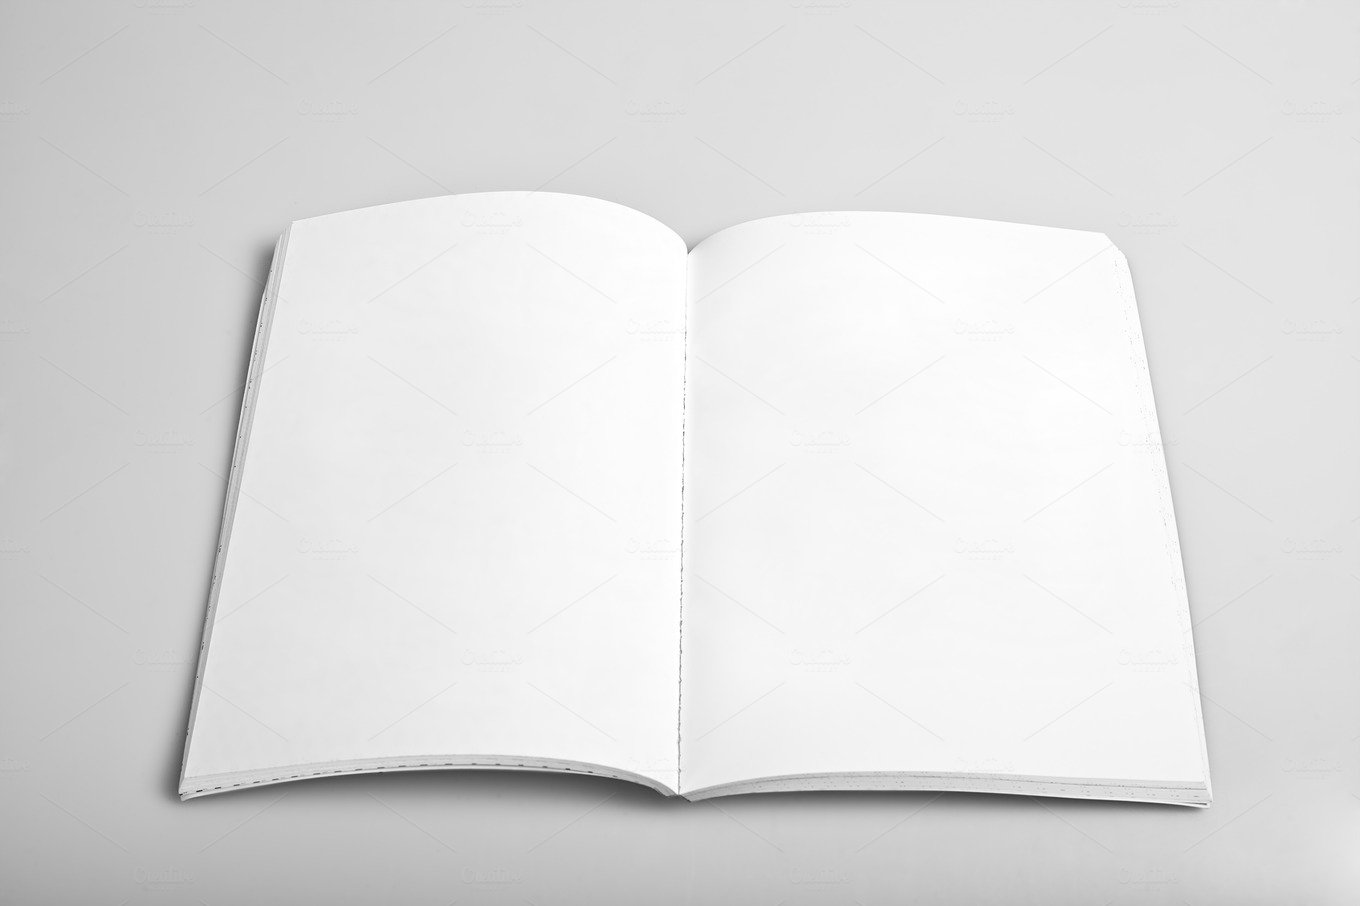 Open Magazine With Blank Pages Business Images Creative Market